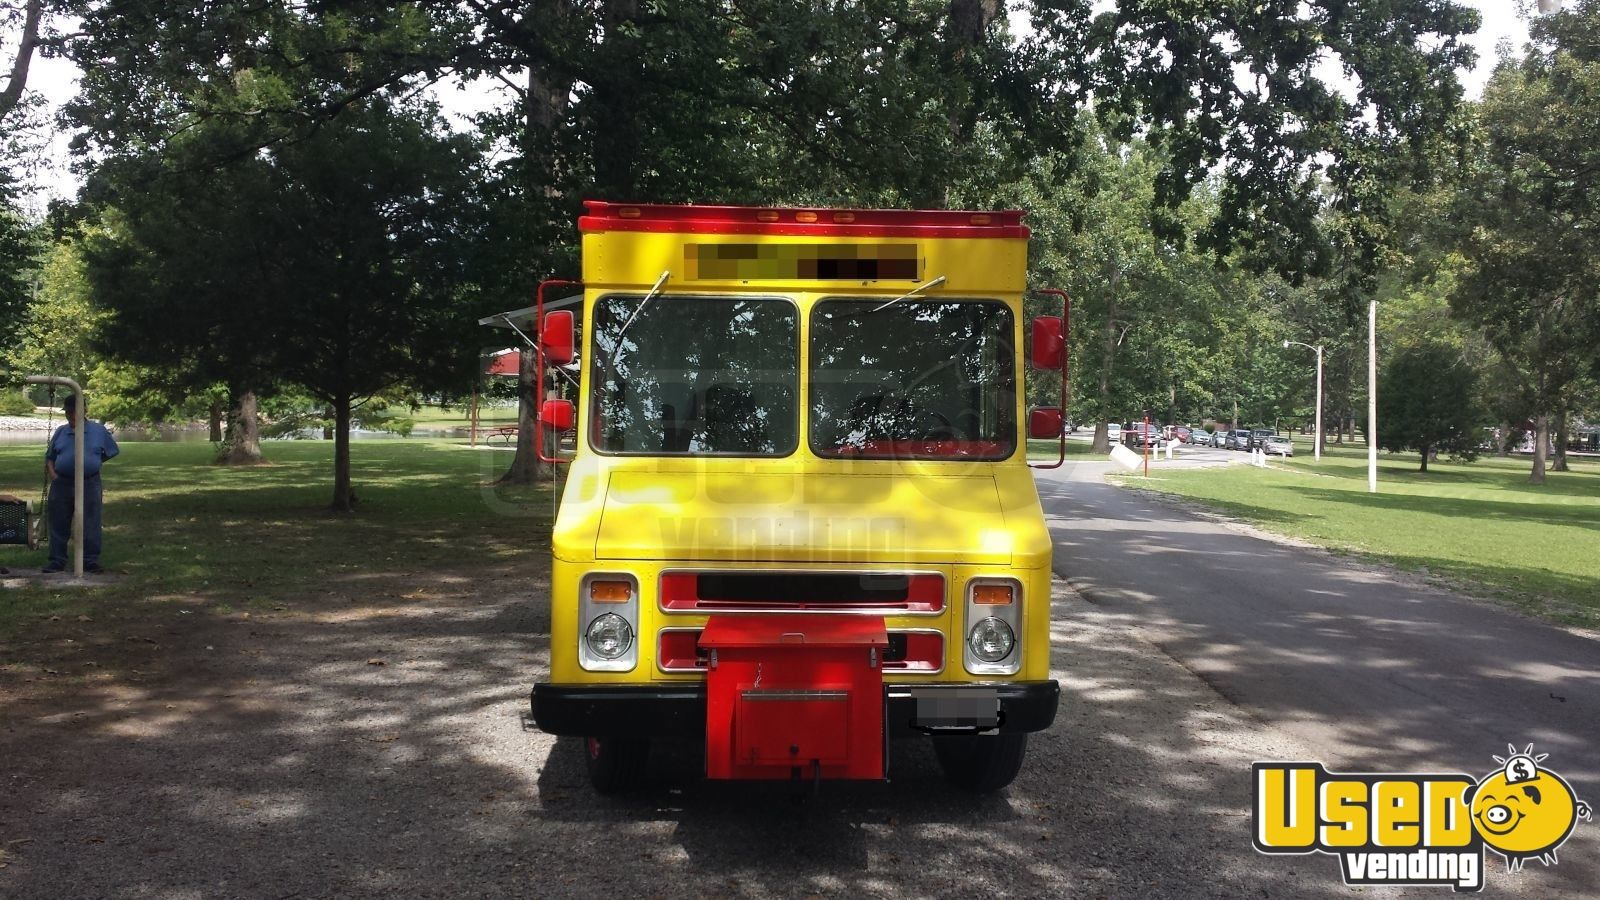 1986 Chevy P30 All-purpose Food Truck Insulated Walls Illinois Gas Engine for Sale - 4